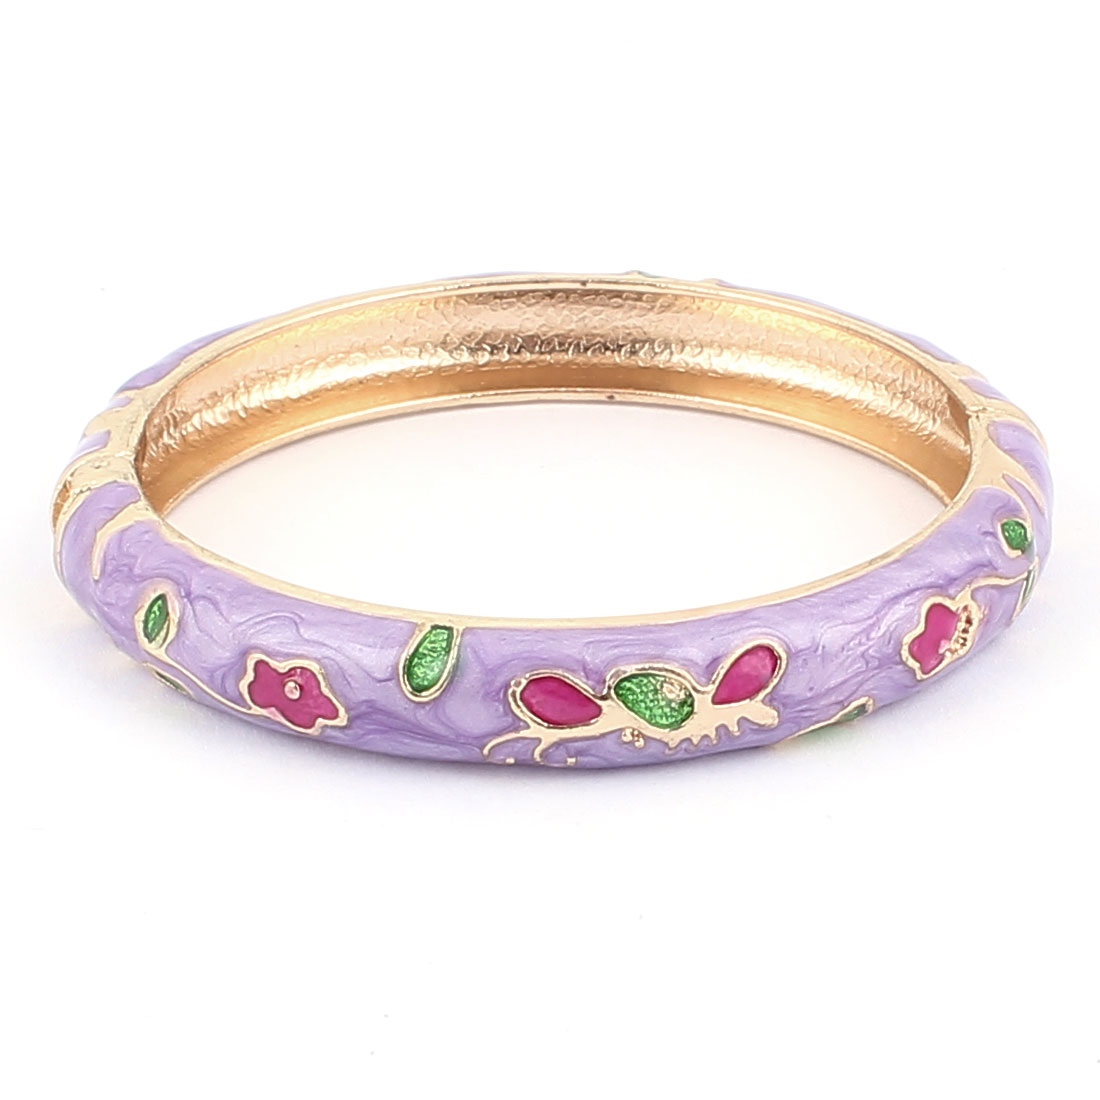 Woman Lady Spring Hinged Round Cuff Floral Pattern Enamel Bracelet Bangle Purple